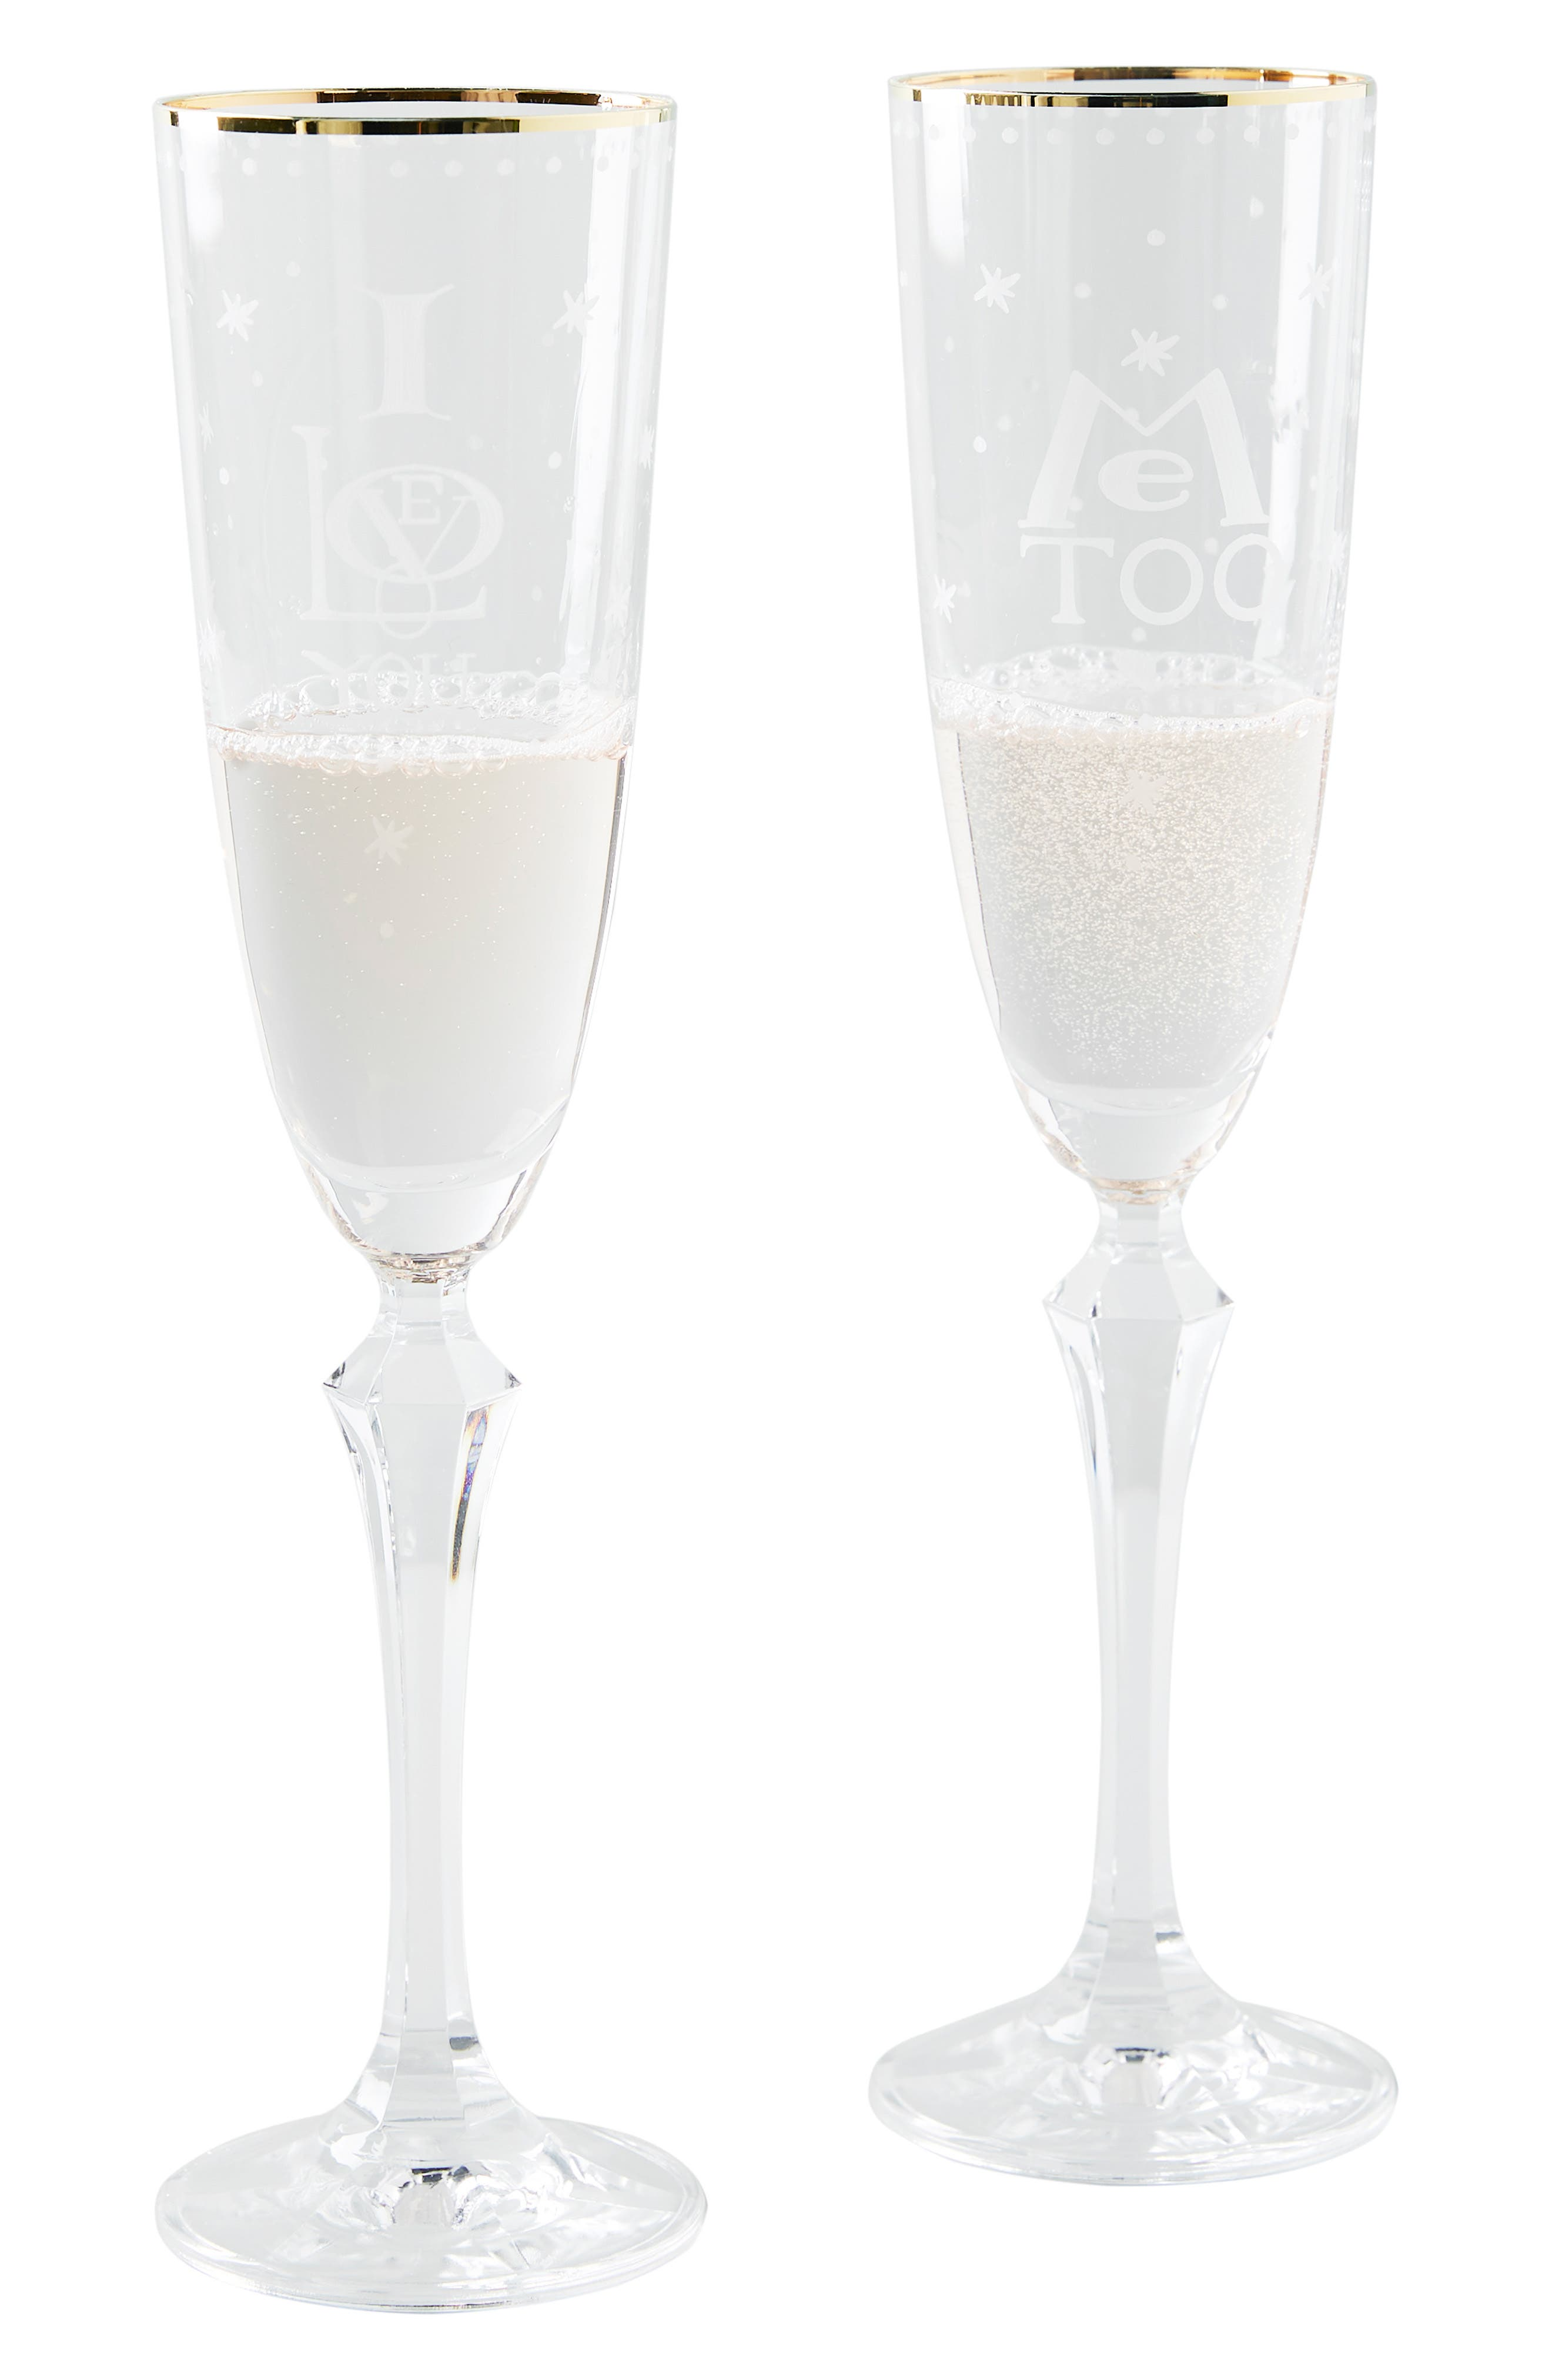 ANTHROPOLOGIE,                             Sybille Set of 2 Flutes,                             Alternate thumbnail 3, color,                             CLEAR